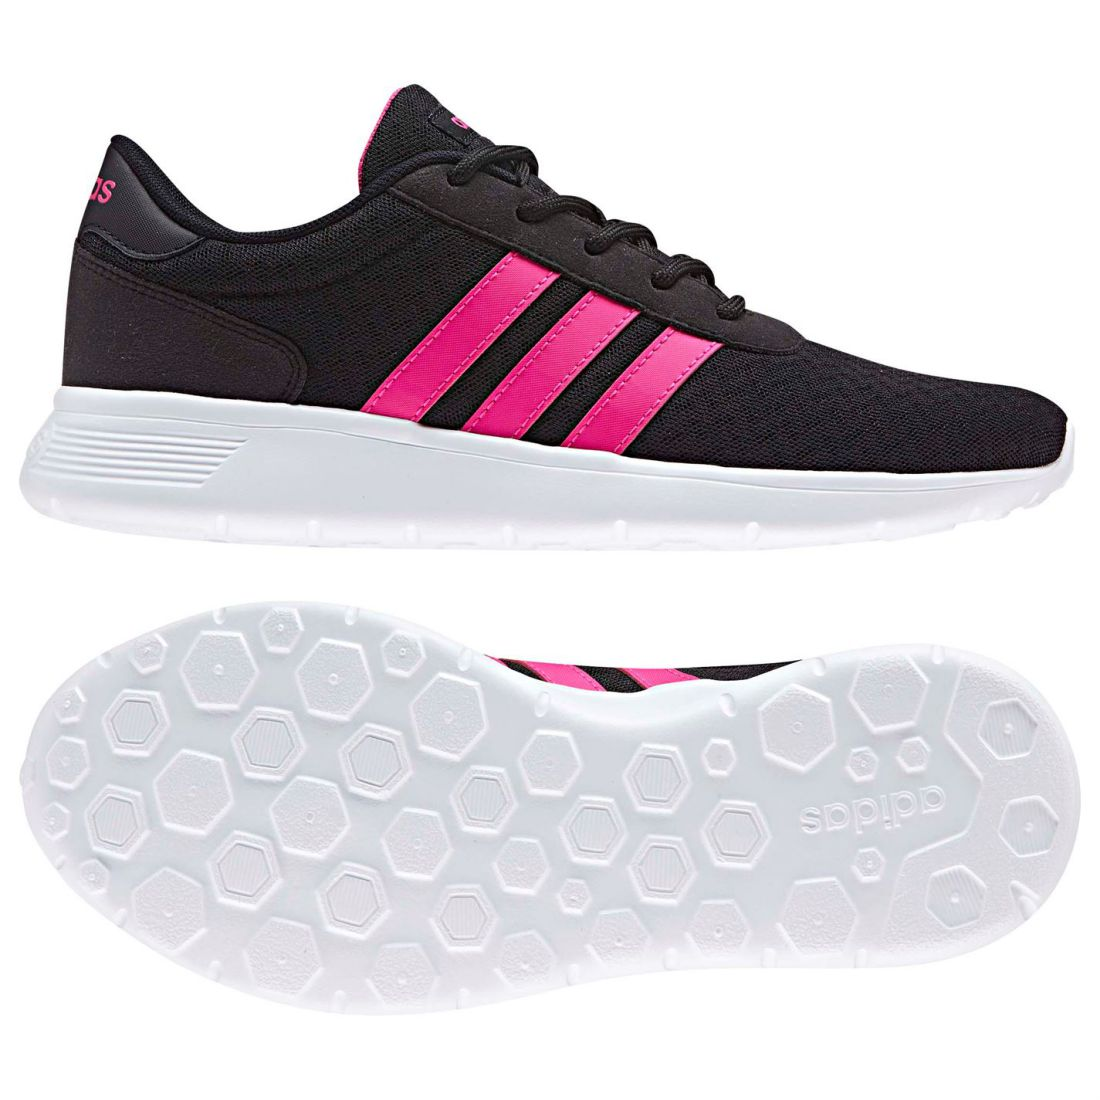 2b4b036de Details about adidas Womens Lite Racer Trainers Runners Lace Up Breathable  Suede